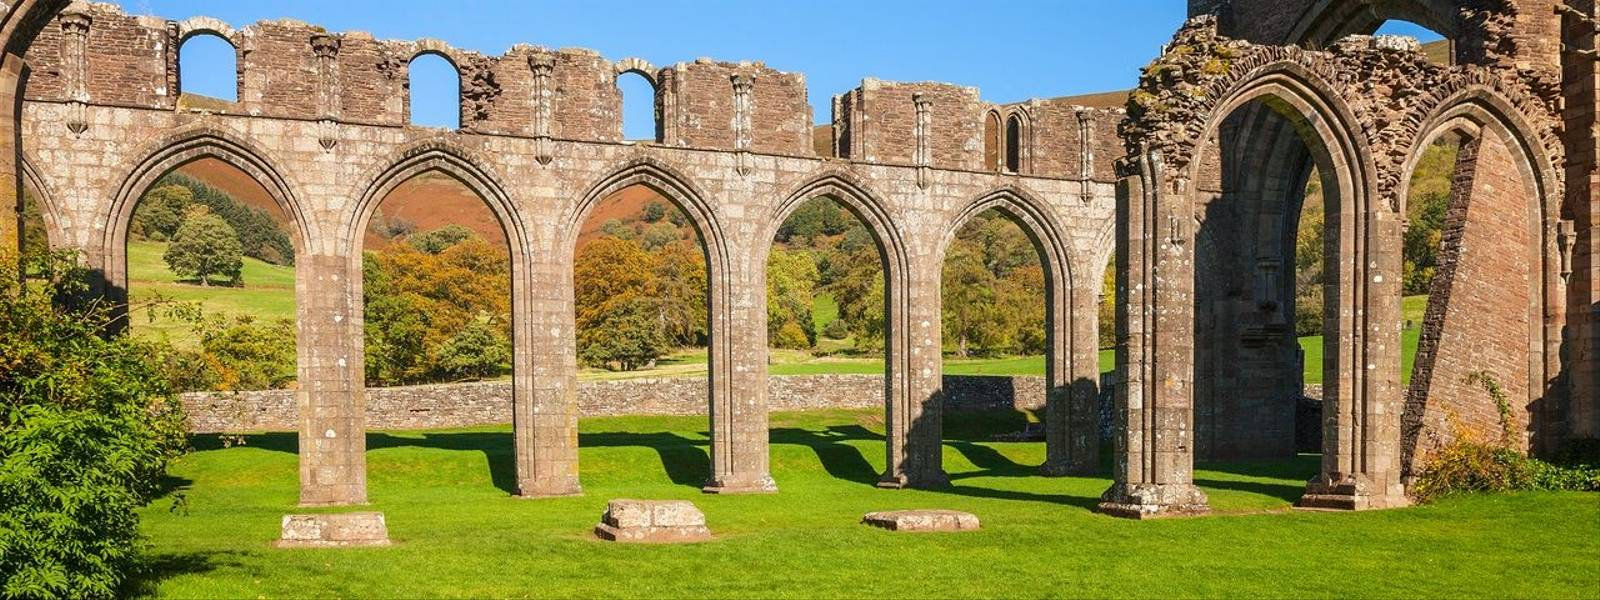 Remains of Nave from the cloisterLlanthony Priory Cadw SitesSAMN: MM004NGR: SO289278MonmouthshireSouthPrioriesMediev…